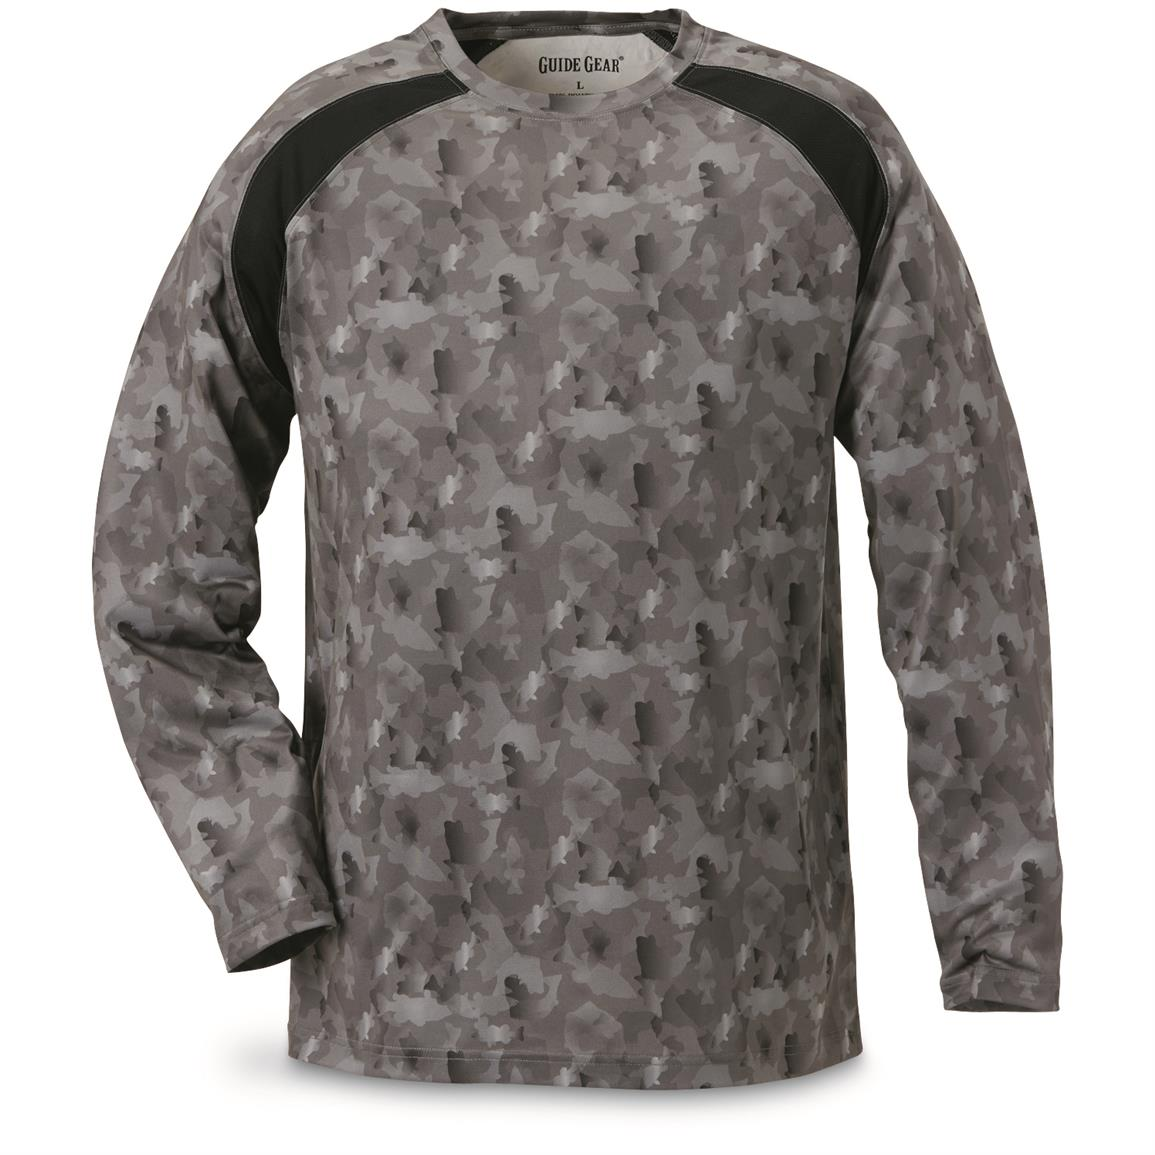 Guide Gear Men's Performance Fishing Long Sleeve T-Shirt, Black Fish Camo